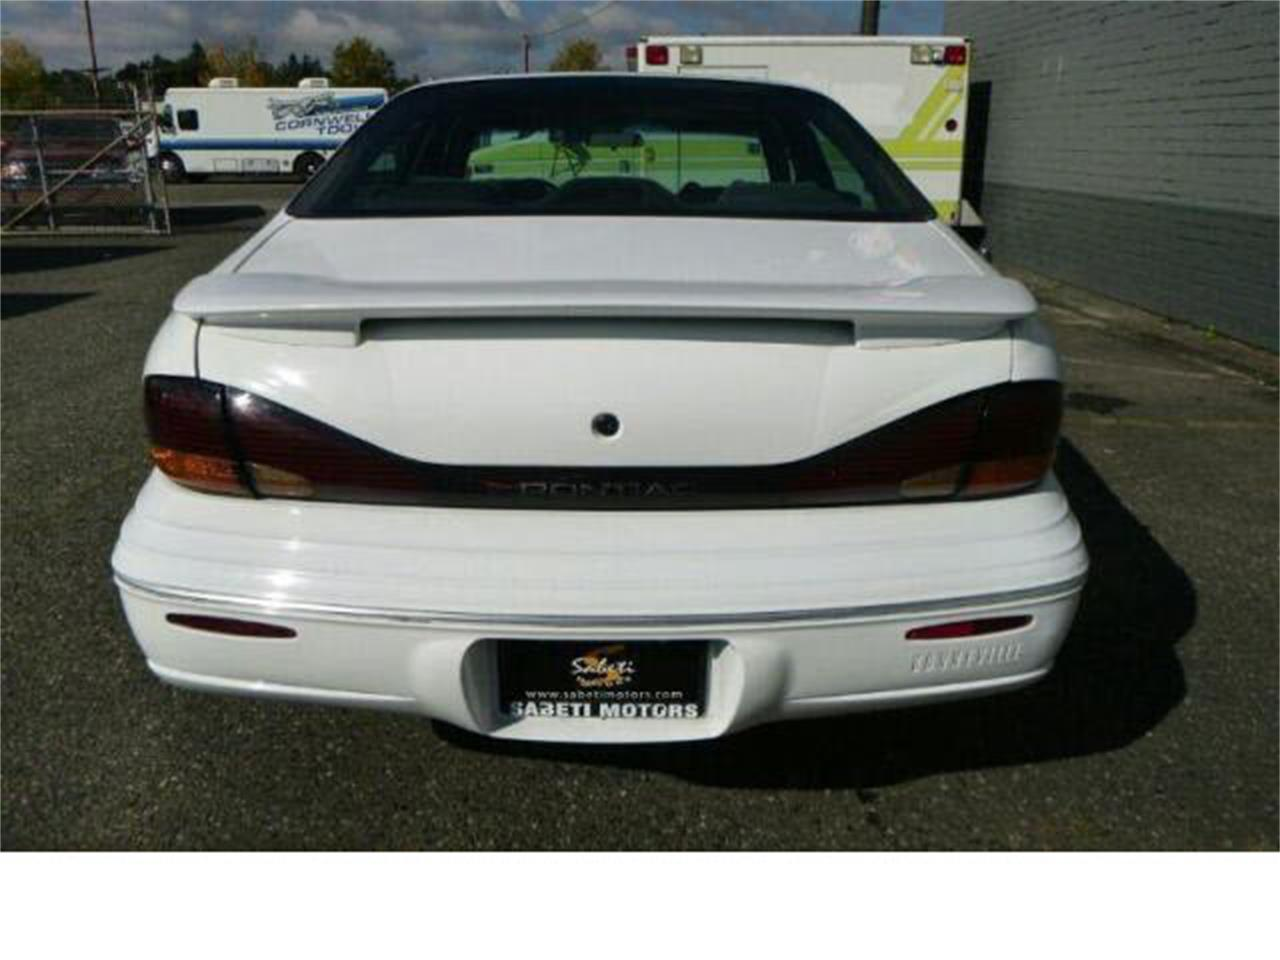 Large Picture of 1998 Bonneville located in Tacoma Washington - $3,990.00 - M5Q6